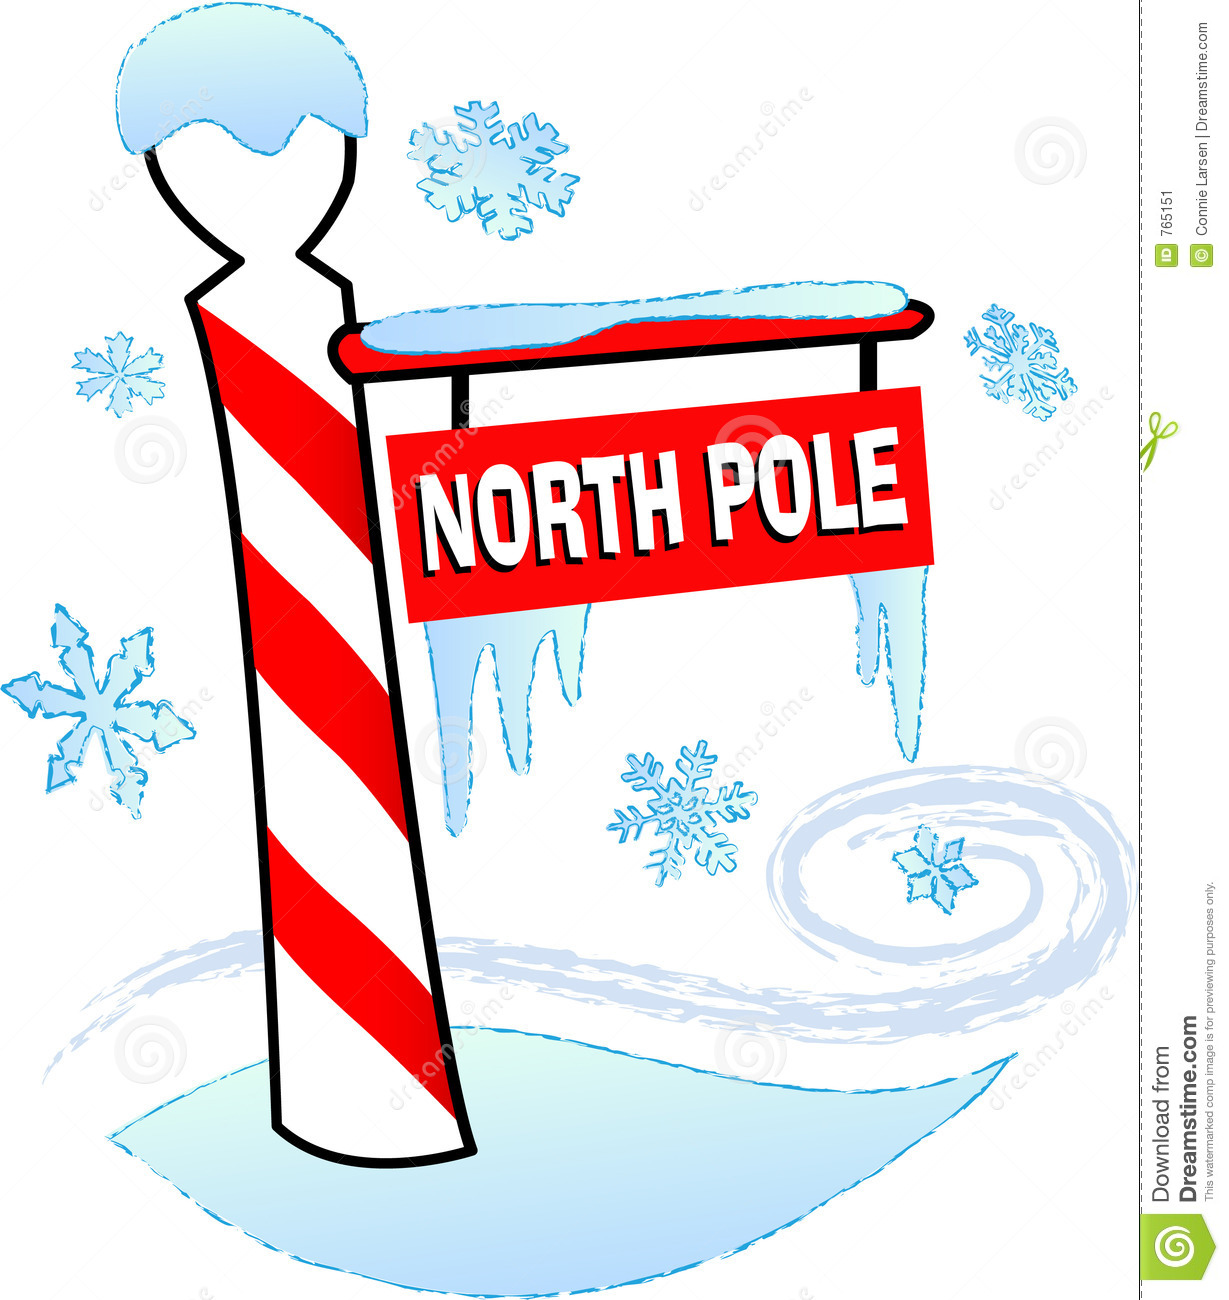 North pole images clipart clip art black and white 82+ North Pole Clipart | ClipartLook clip art black and white